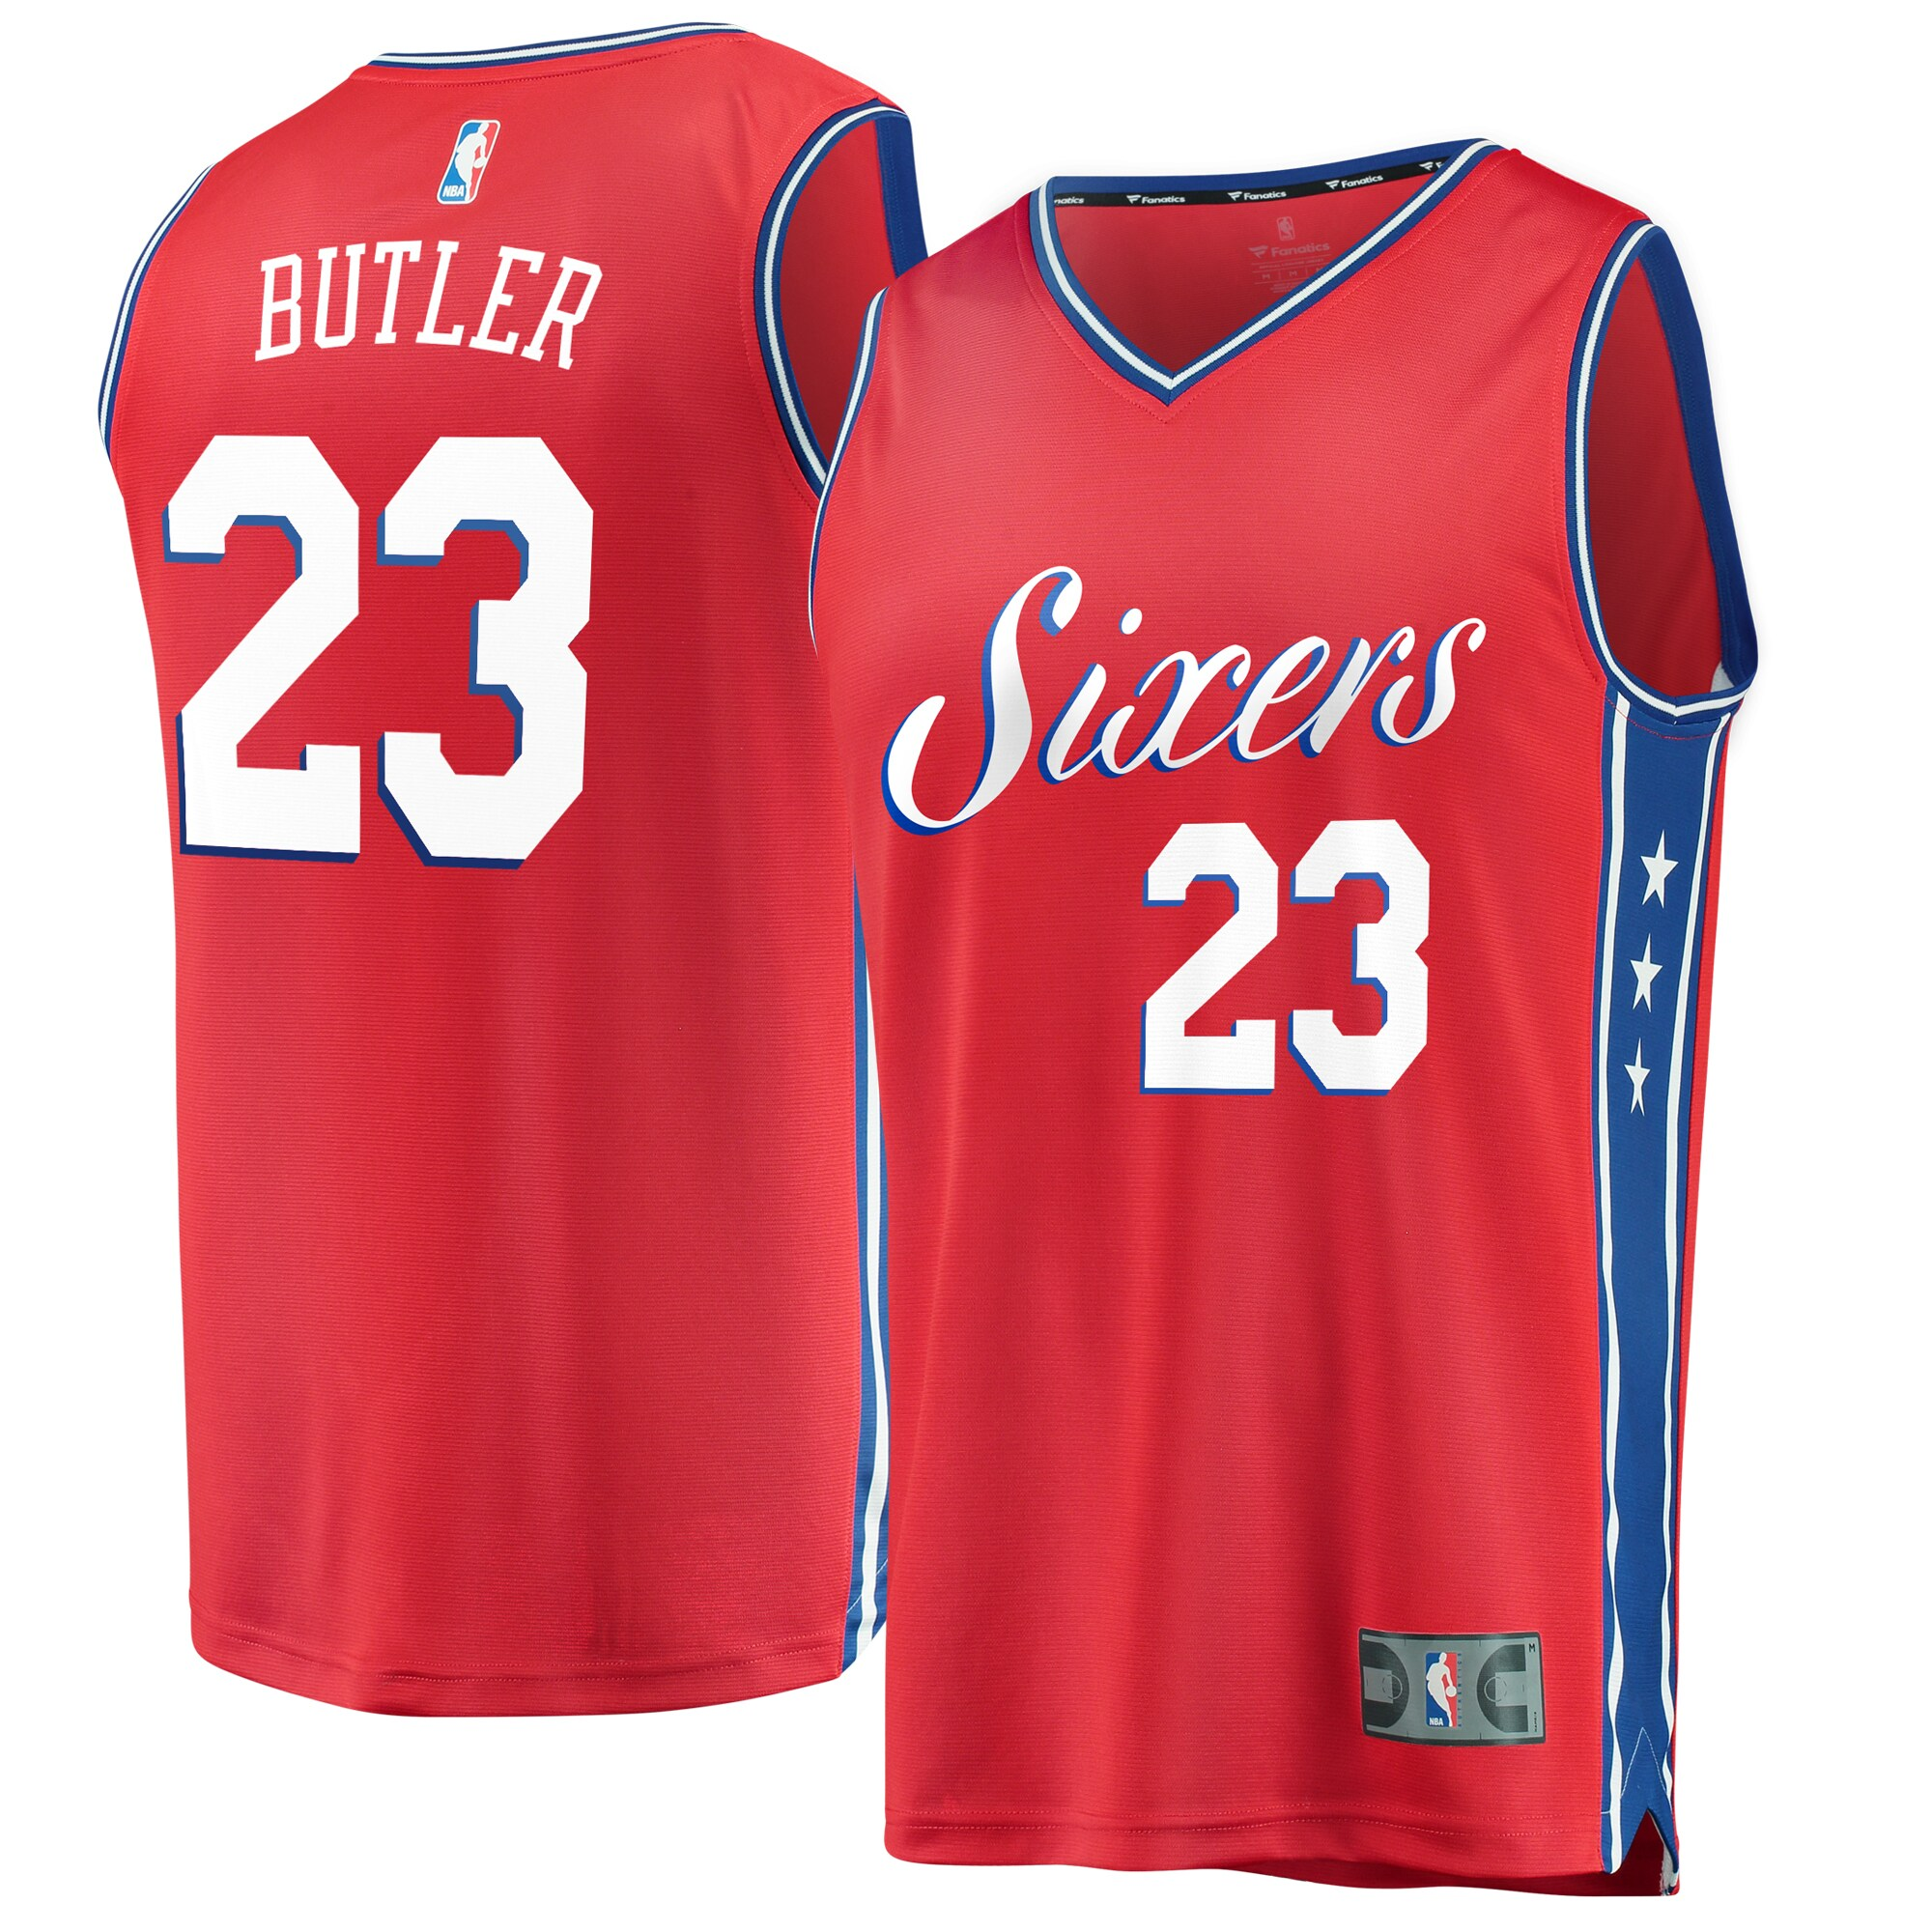 Jimmy Butler Philadelphia 76ers Fanatics Branded Fast Break Replica Player Jersey- Statement Edition - Red